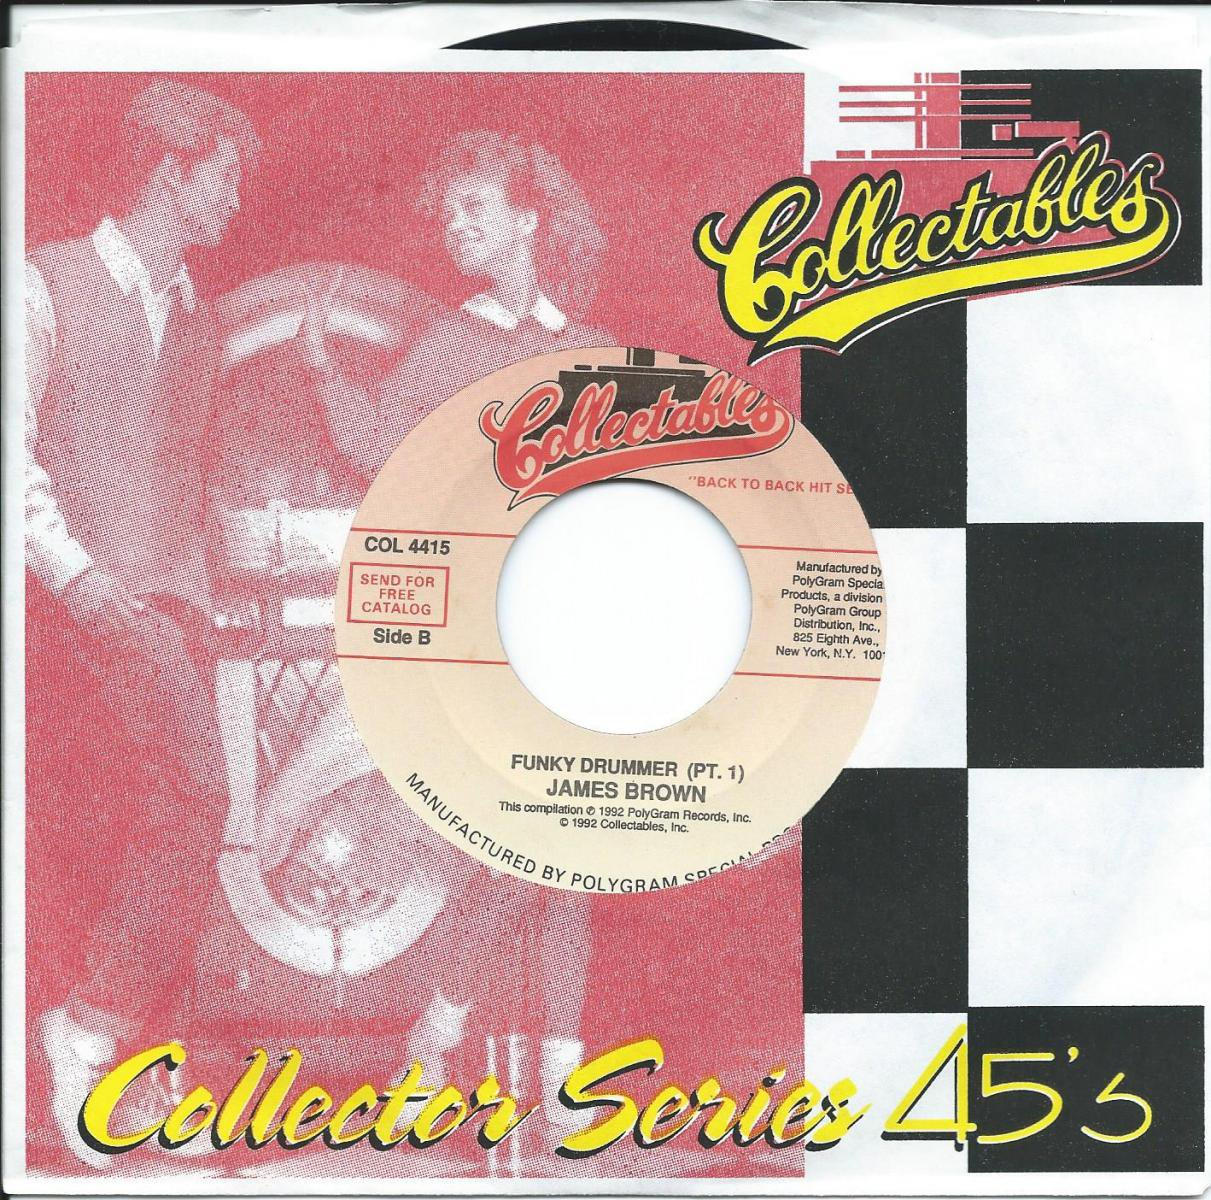 JAMES BROWN / FUNKY DRUMMER (PT. 1) / AIN'T IT FUNKY NOW (PT. 1) (7